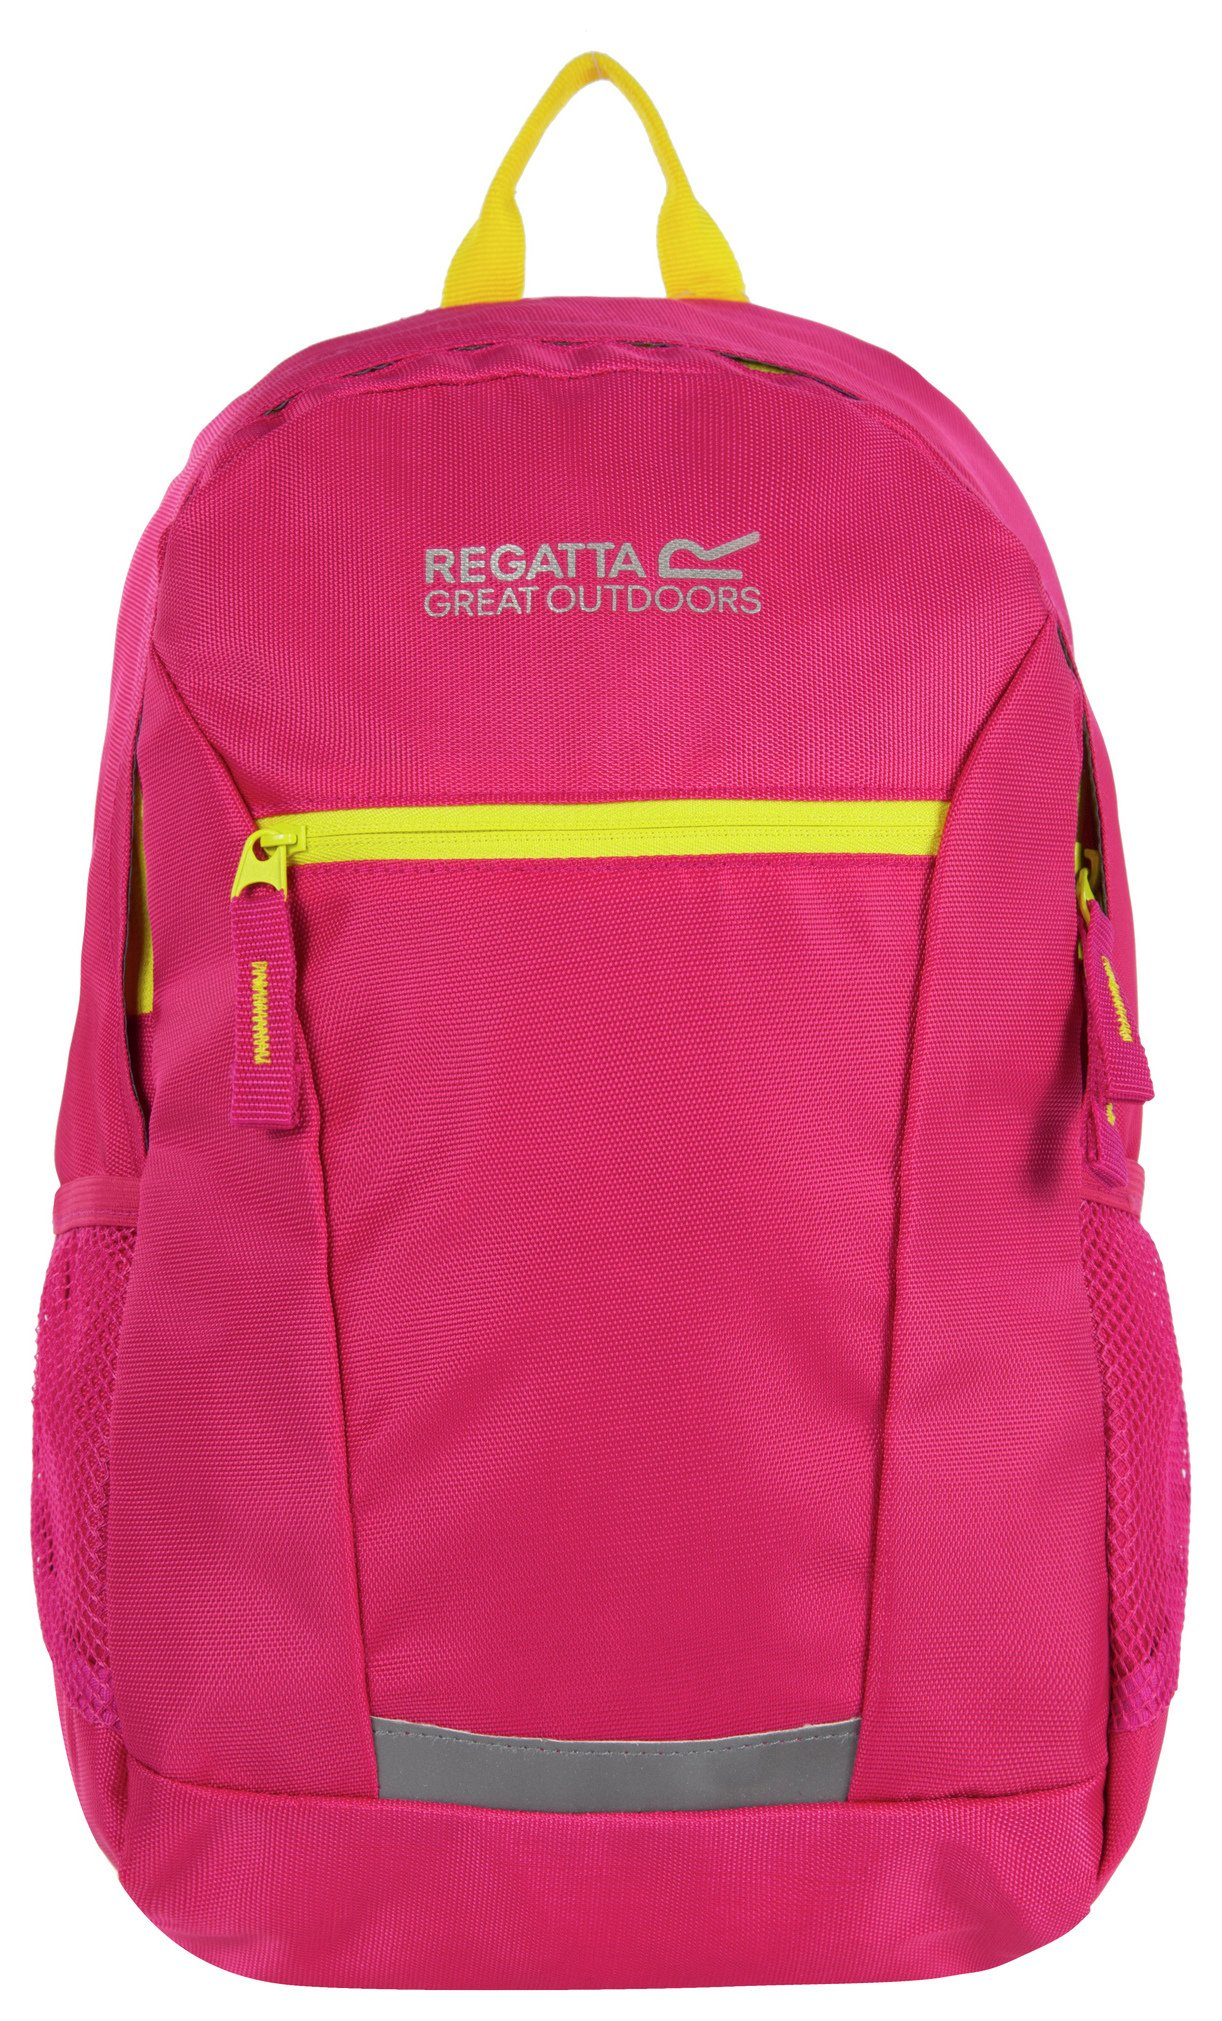 Regatta Jaxon II 10L Backpack - Jem/BriYello. lowest price